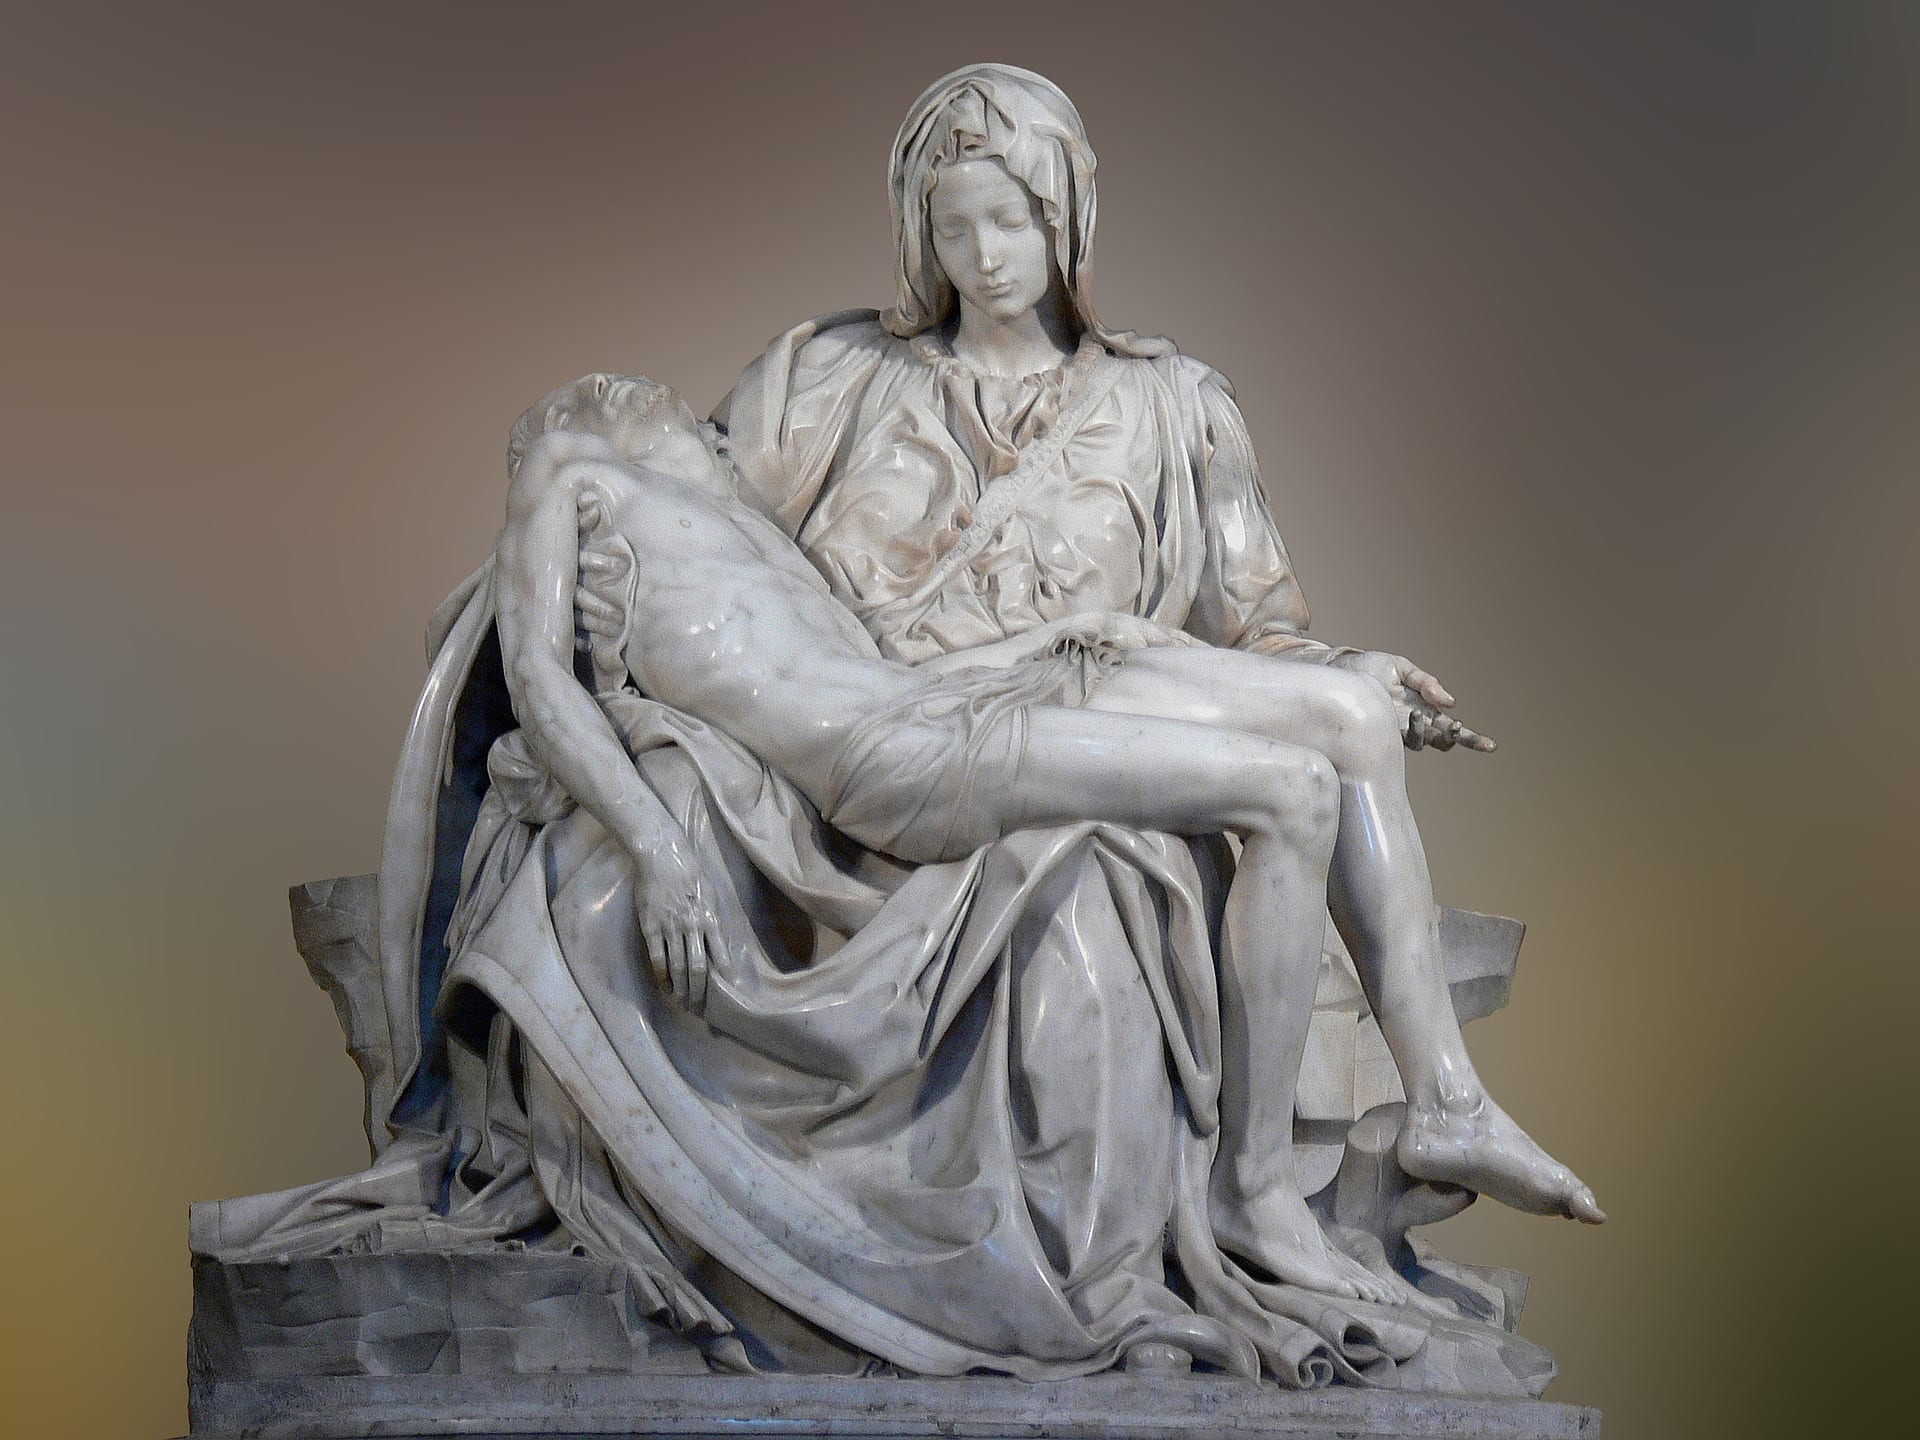 Michelangelo's Pietà at St. Peter's Basilica